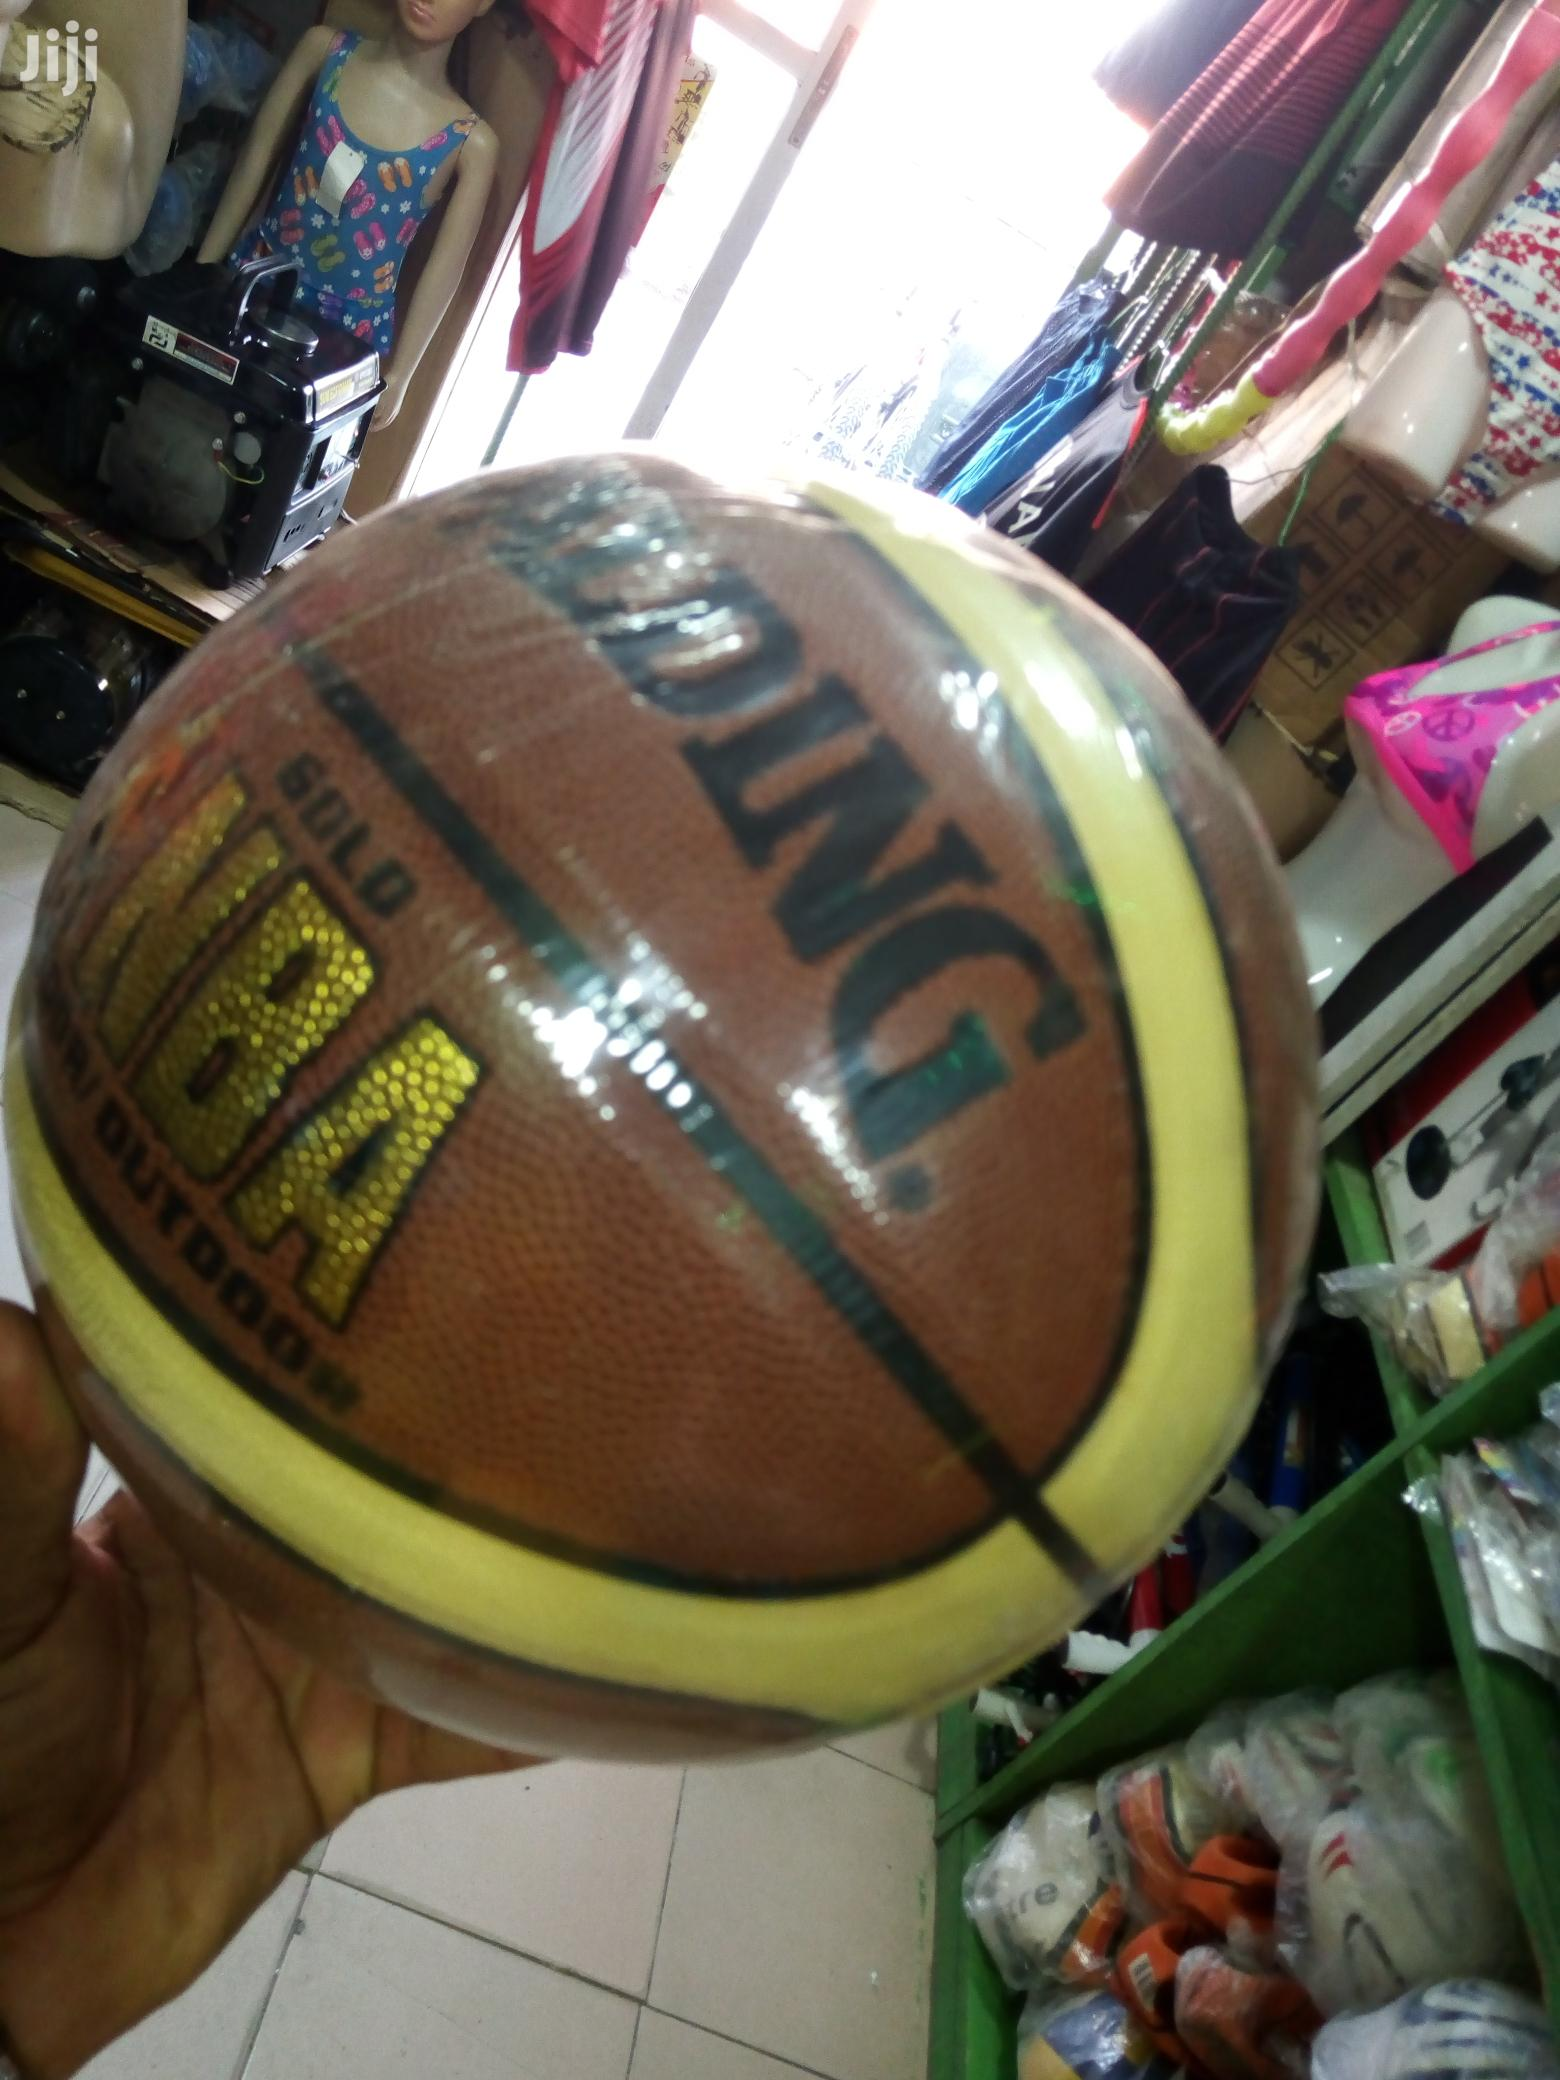 High Quality Leather Spalding Basketball   Sports Equipment for sale in Ikeja, Lagos State, Nigeria